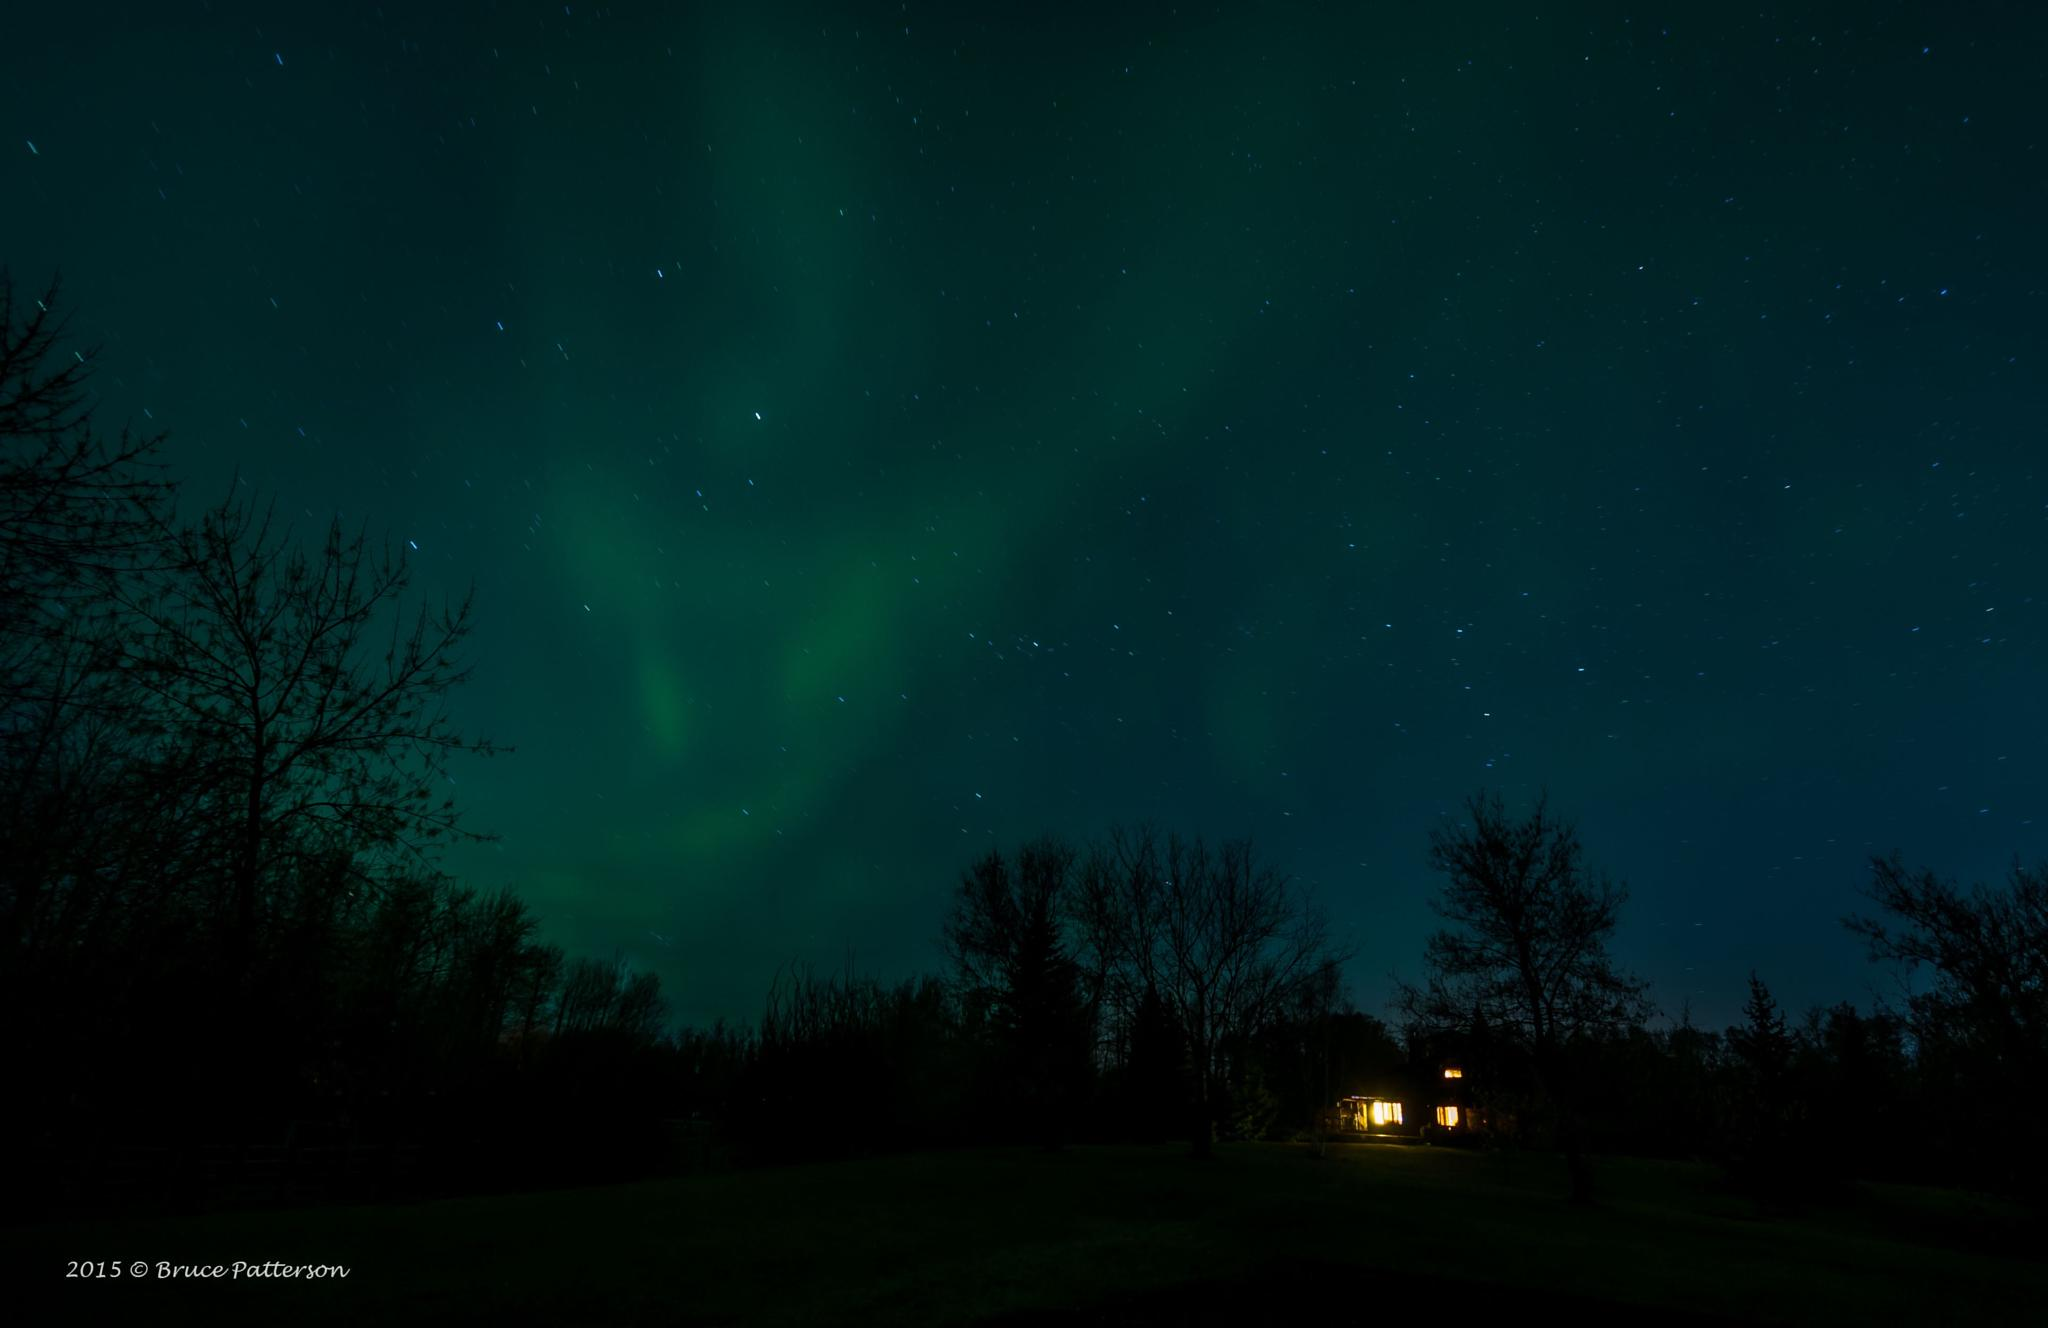 Northern Lights Over Little House by Bruce Patterson